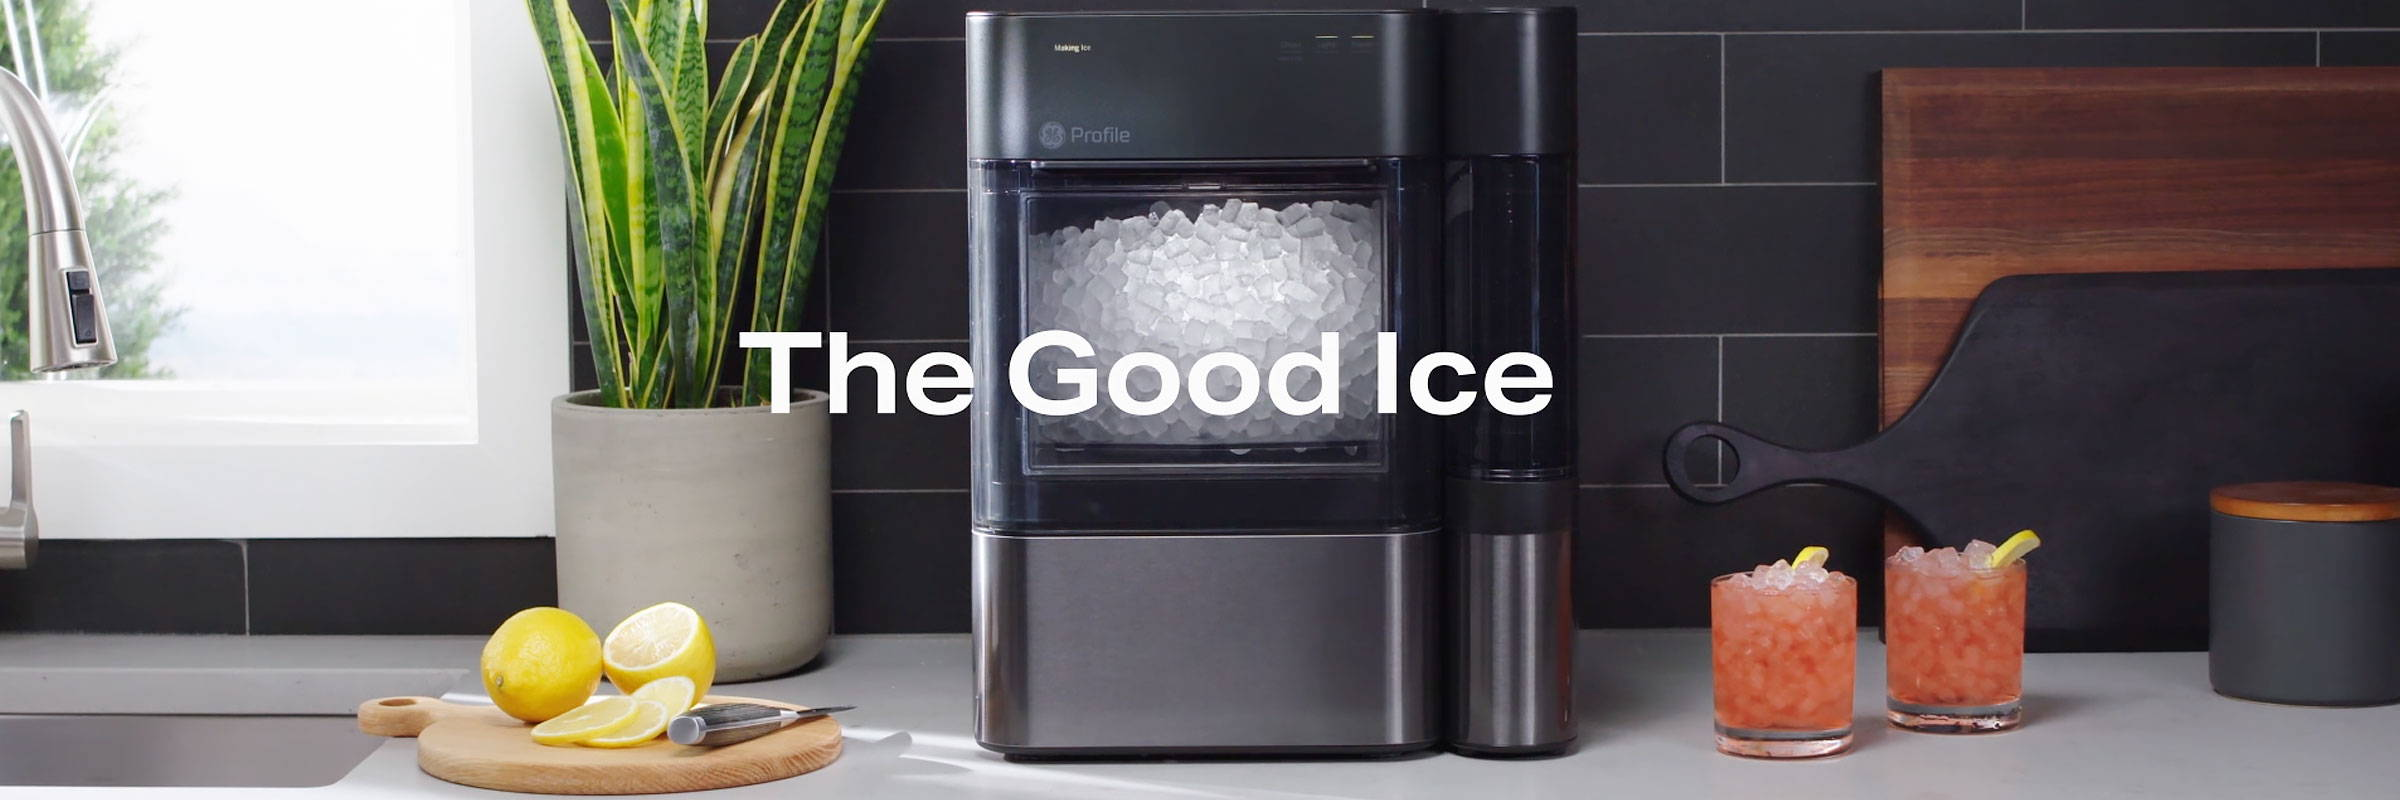 The Good Ice - NEW GE Profile Opal 2.0 Nugget Ice Maker  on counter with delicious drinks.